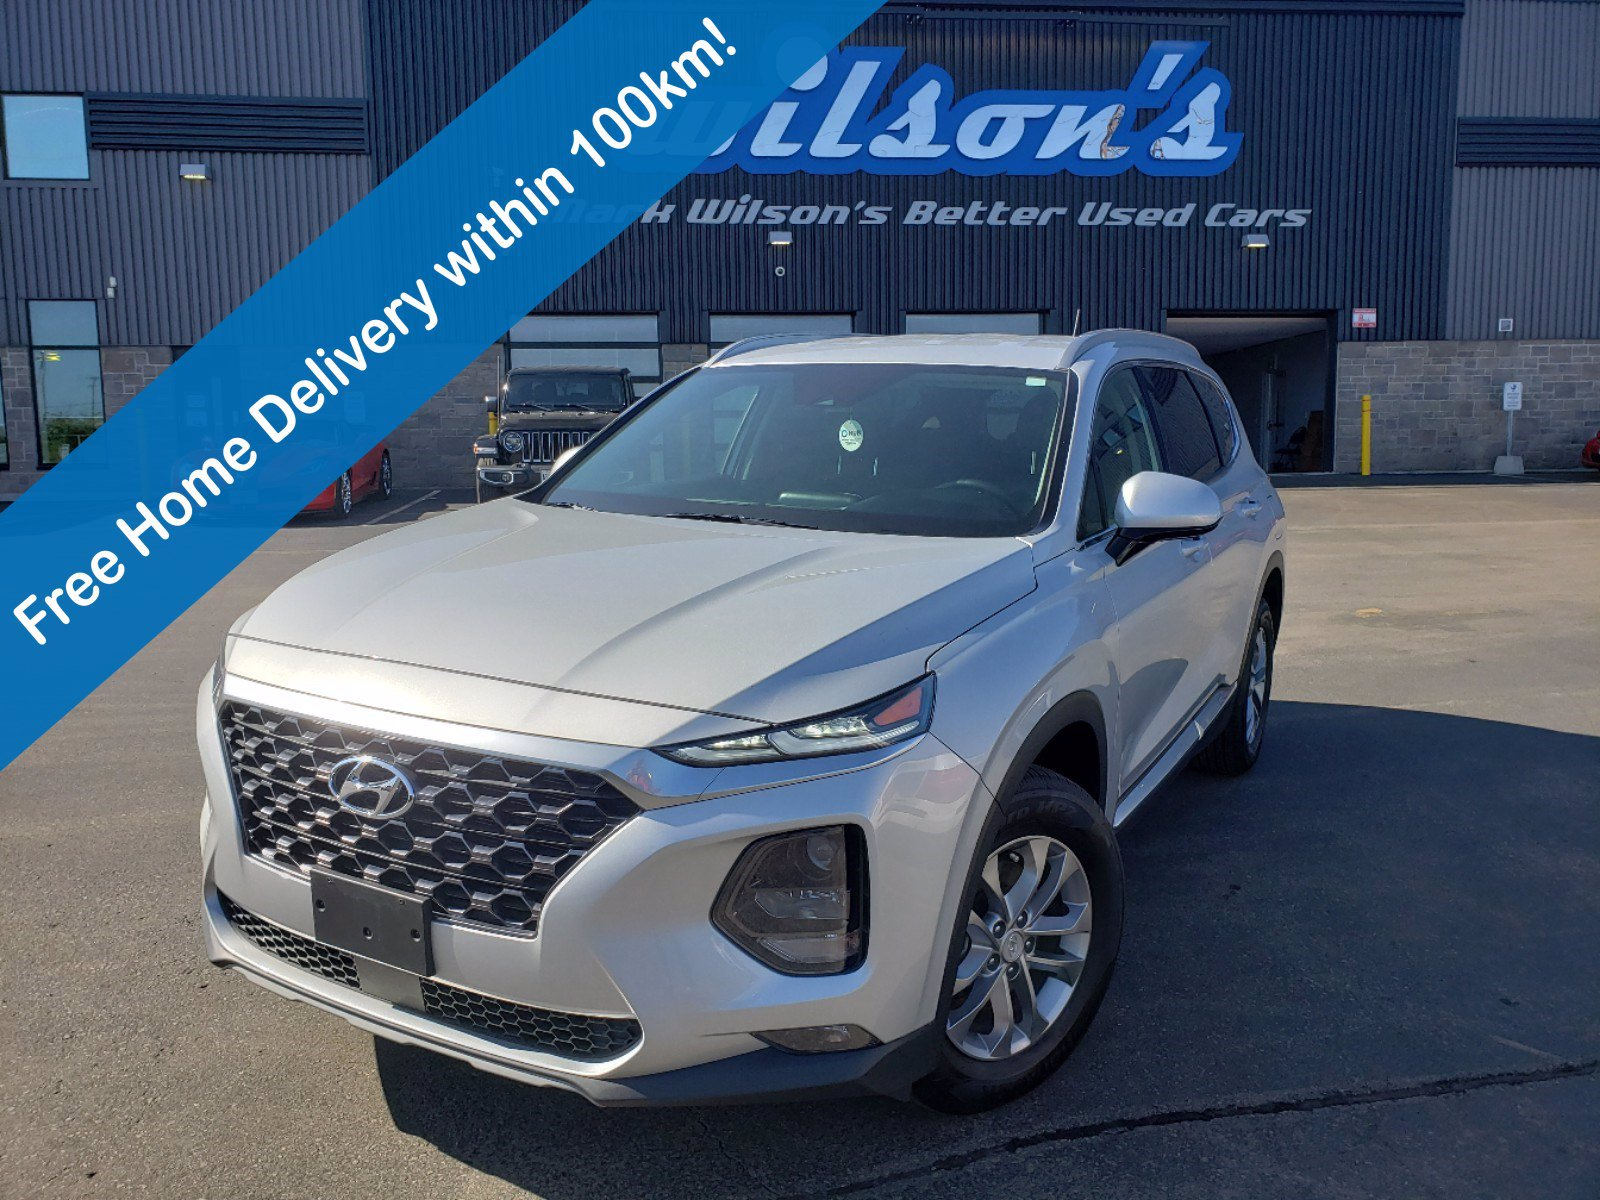 Certified Pre-Owned 2020 Hyundai Santa Fe Essential AWD with Safety Package, Apple CarPlay + Android Auto, Rear Camera, Bluetooth, Alloy Wheel